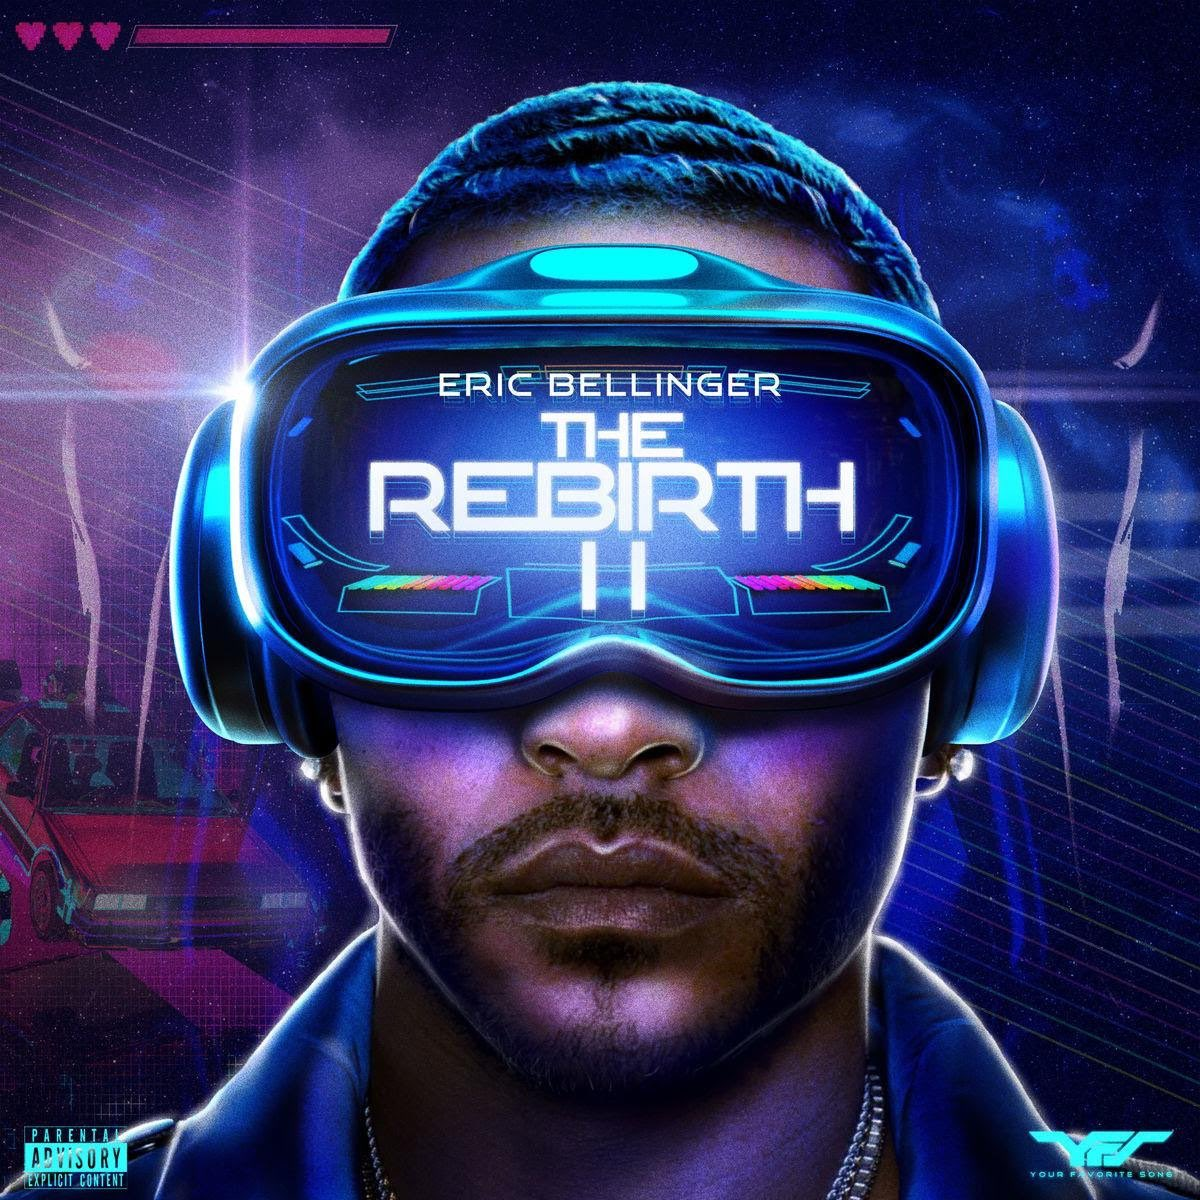 """Eric Bellinger Drops Off """"The Rebirth 2"""" Featuring Chris Brown, Nipsey Hussle, Jeremih, & More.   Stream: https://t.co/ITv0P6iDIh https://t.co/a8CybnTz0h"""